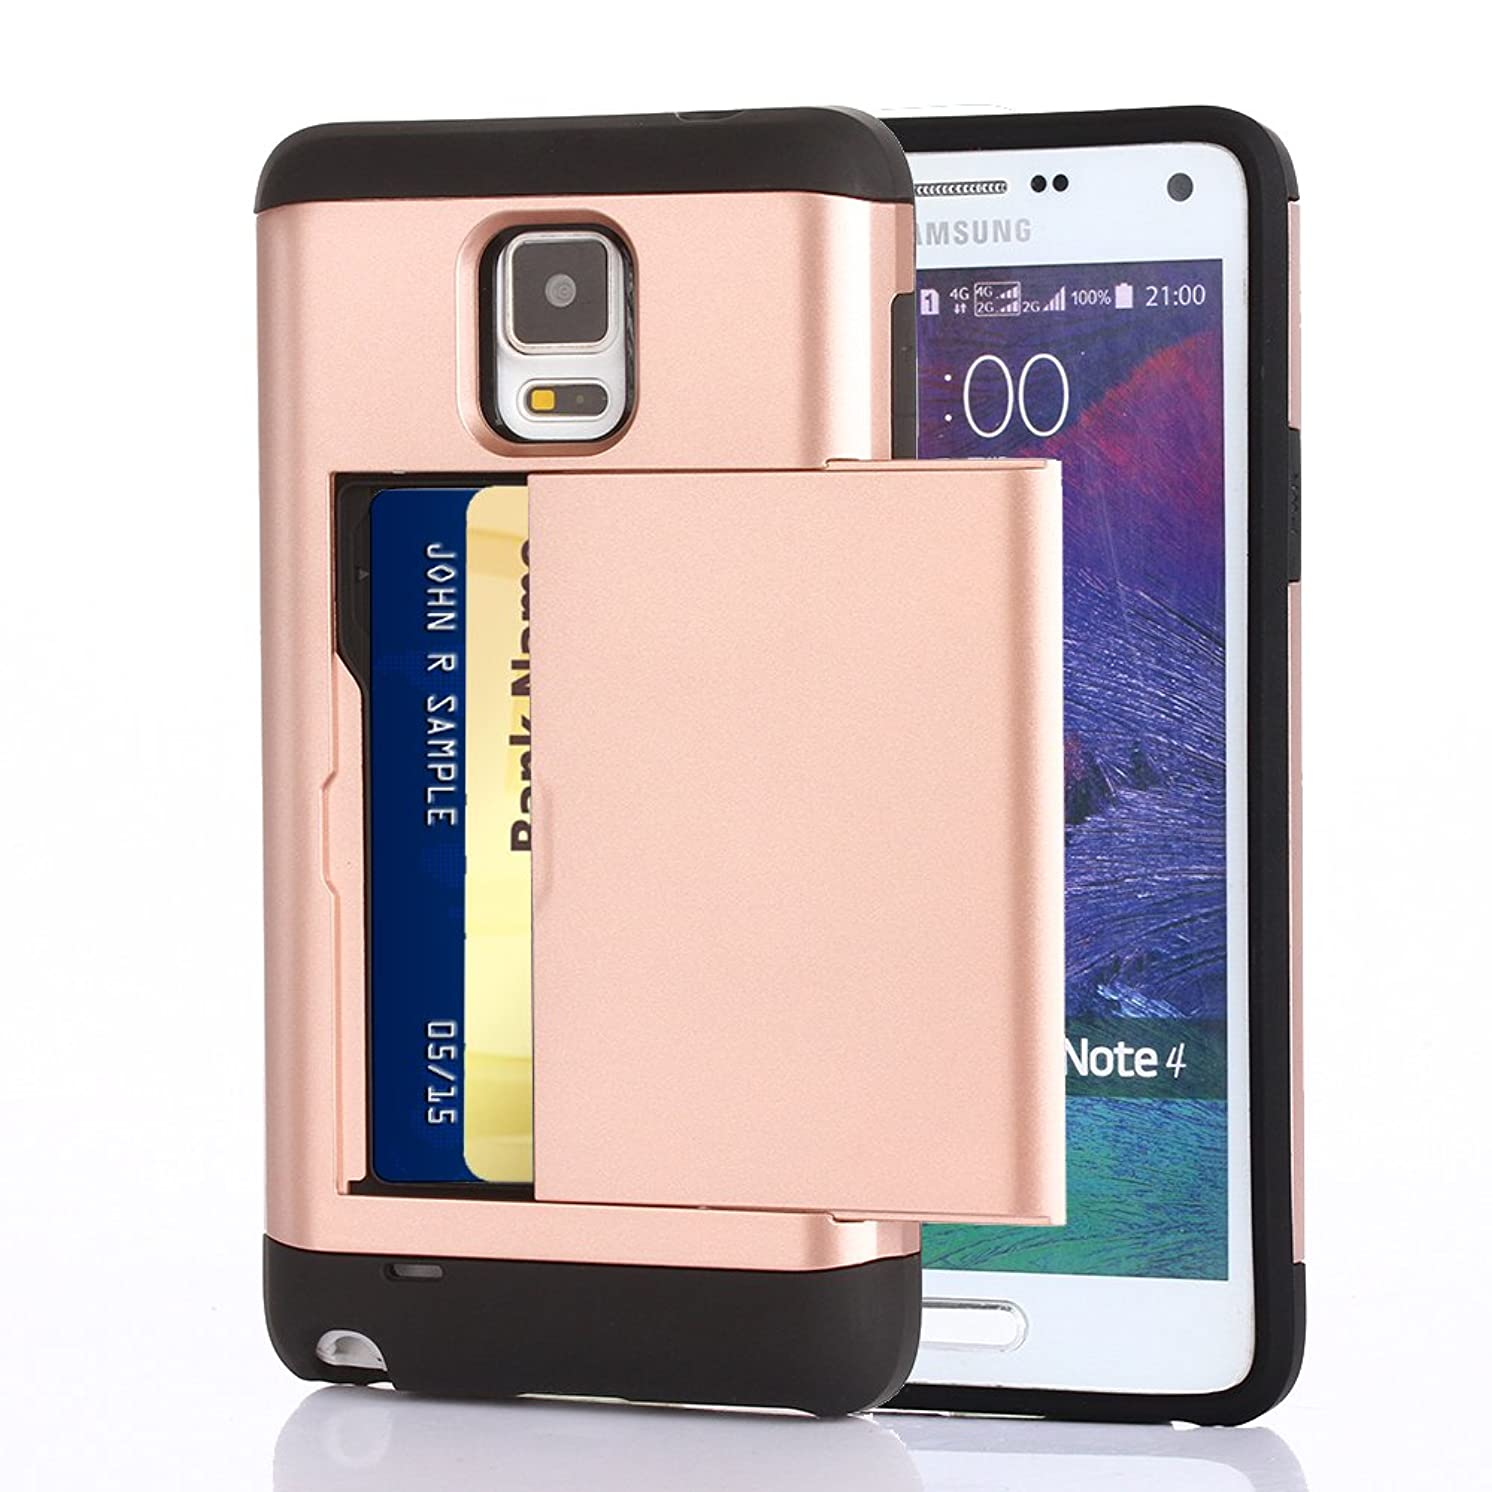 Galaxy Note 4 Case, CaseTop [Easy Card Access] Sliding Back Door Card Holder Wallet Case - Hybrid TPU PC Cover - For Samsung Galaxy Note 4, Rose Gold